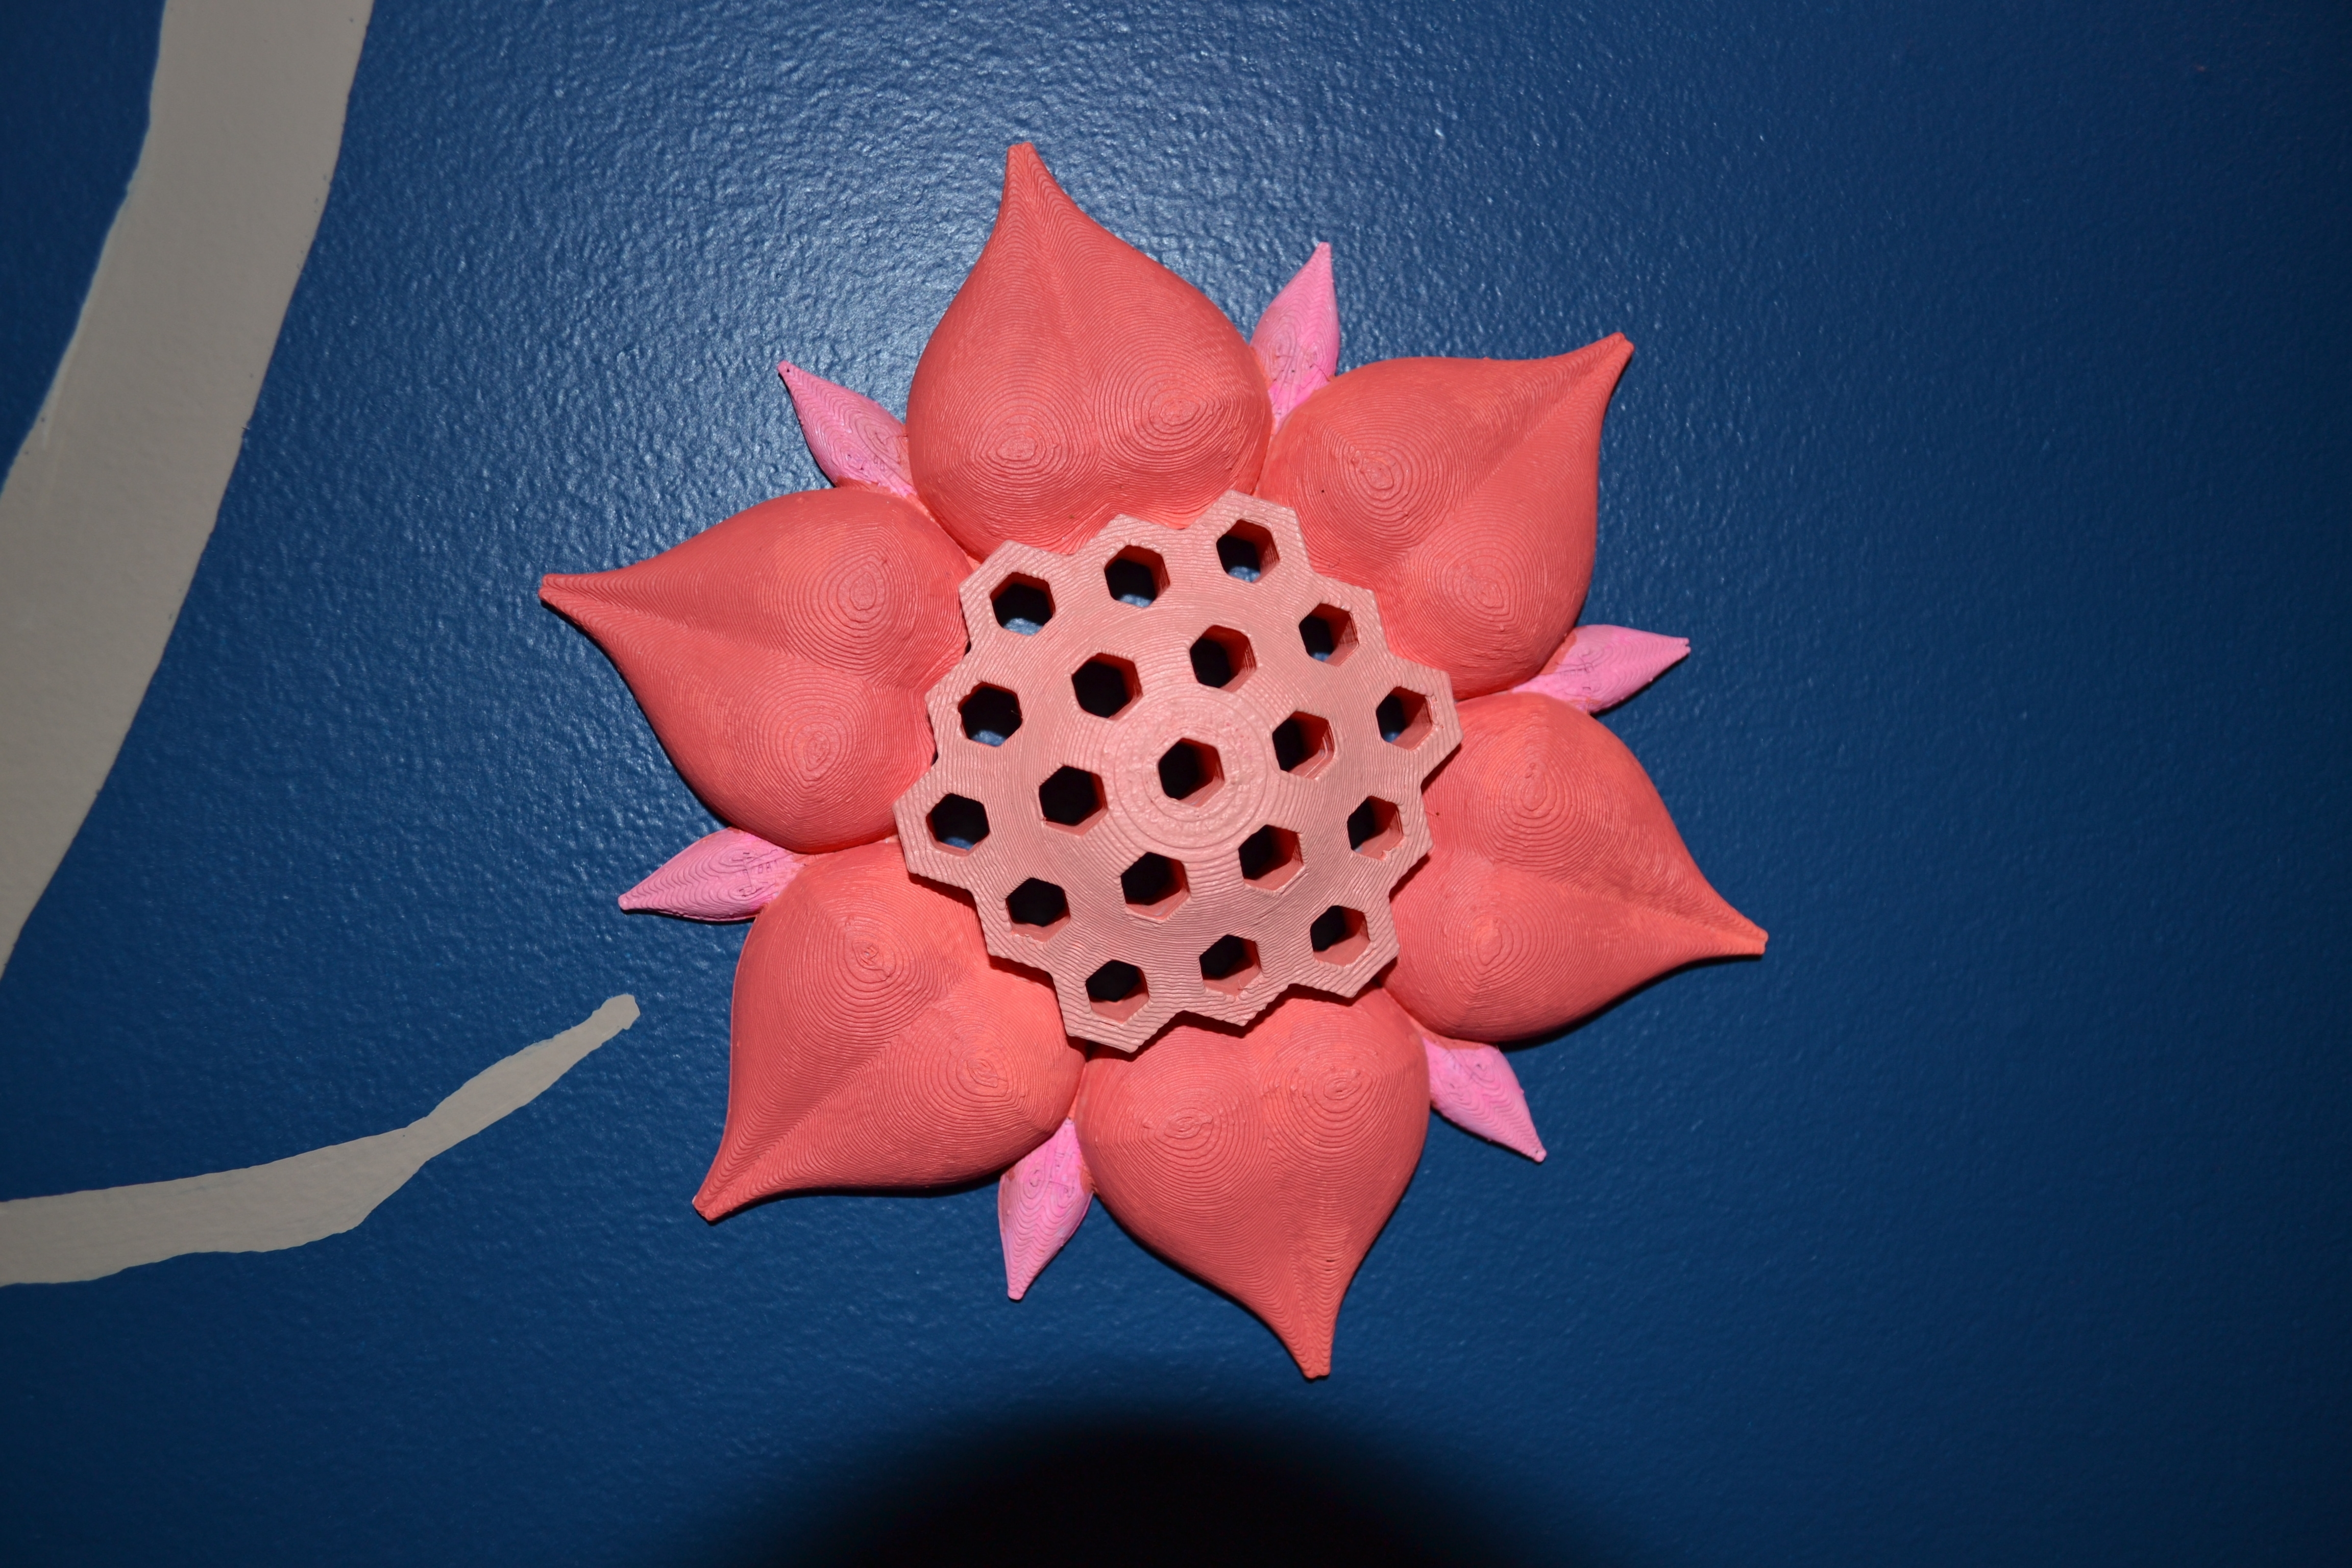 3d Printed Honey Comb Flower Wall Artconcept 2 Creation | Pinshape With Most Current Flower Wall Art (Gallery 15 of 20)